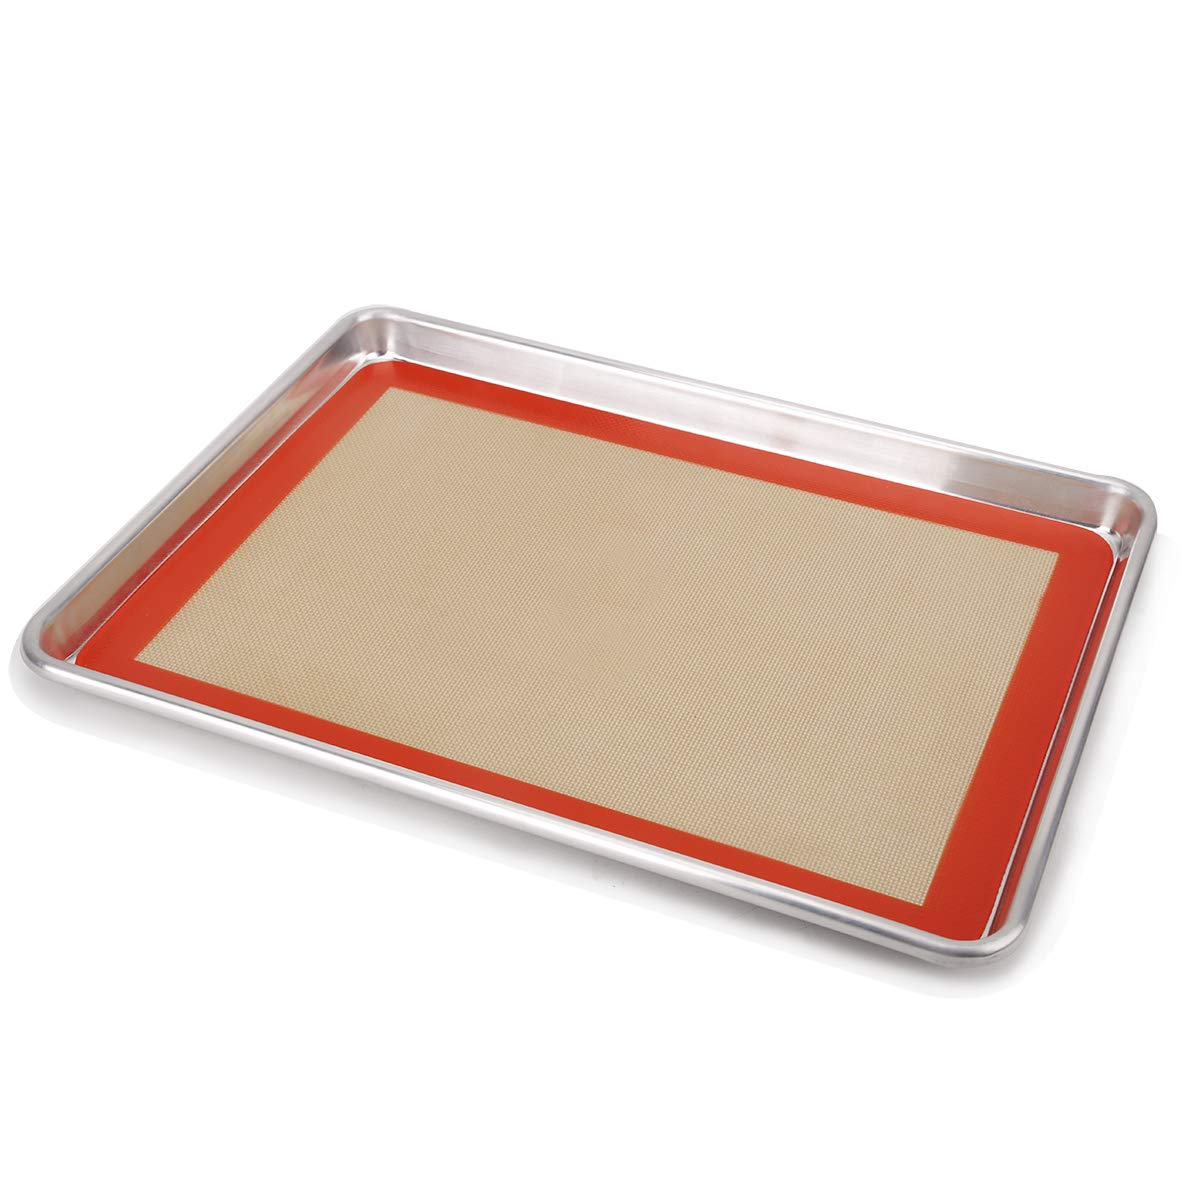 Silicone Baking Mat Set of 4 Non-Stick Large Liner 11 5//8 /×16 1//2 Inches Storage band Half Sheets Cooking Macaron Pastry Mats 12 Pizza Mat with Brush